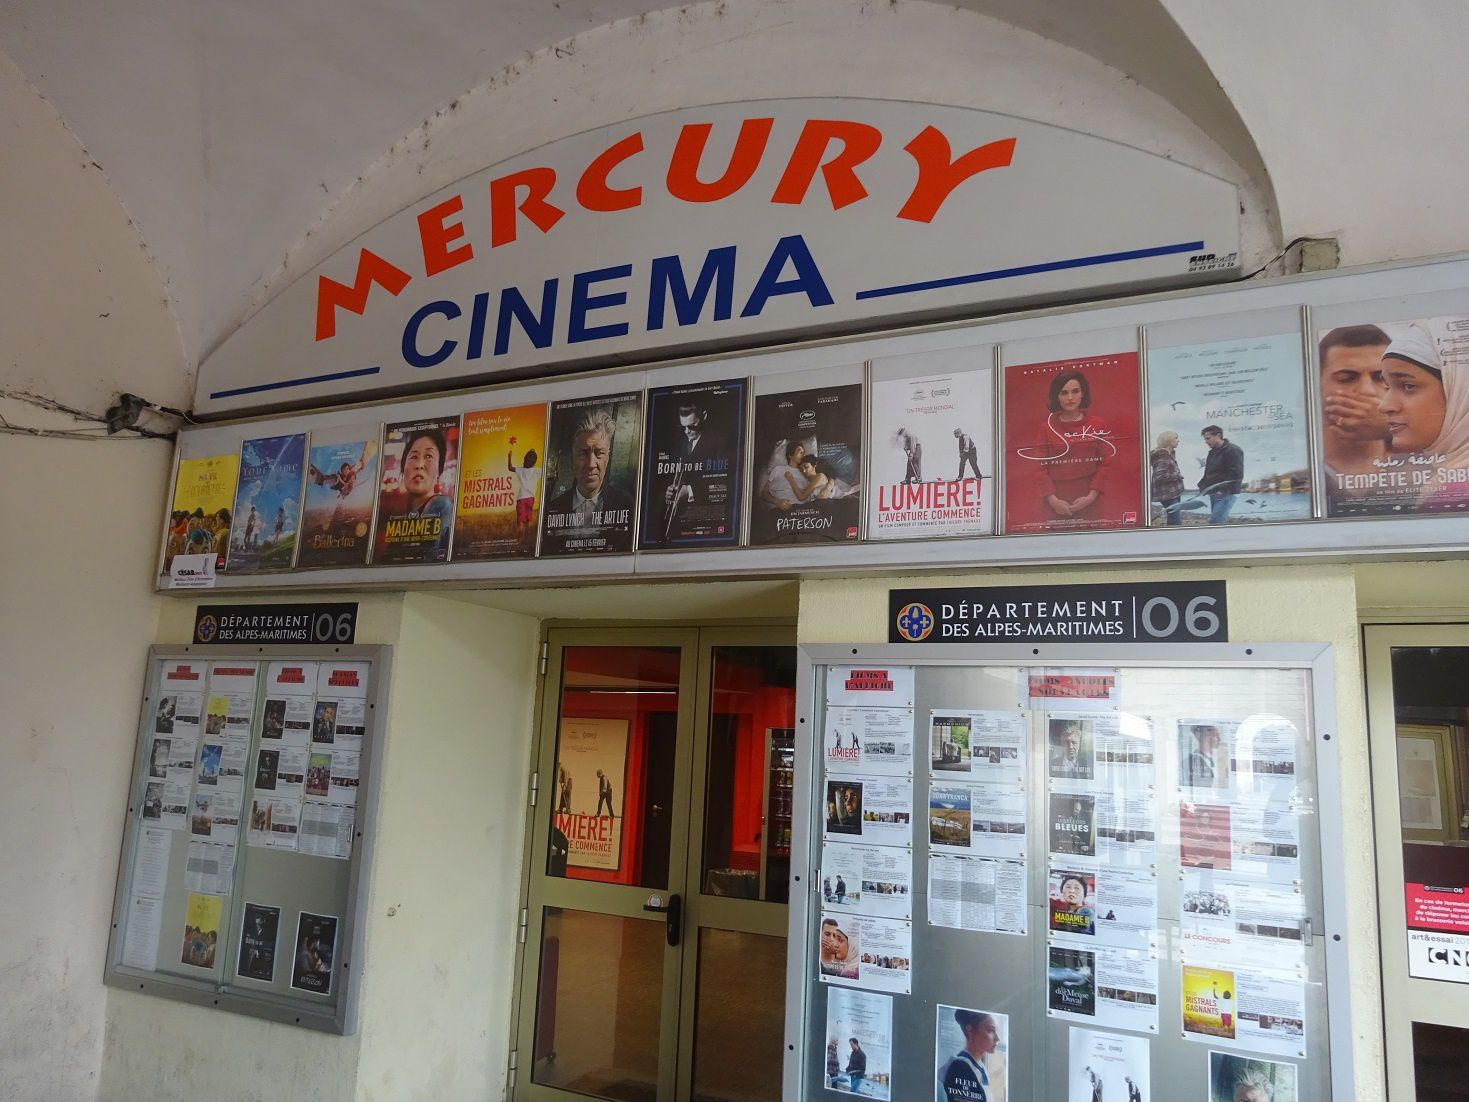 Cinéla Mercury - Nice - David Lynch  : the Art Life ©Théodore Charles/un-culte-d-art.overblog.com